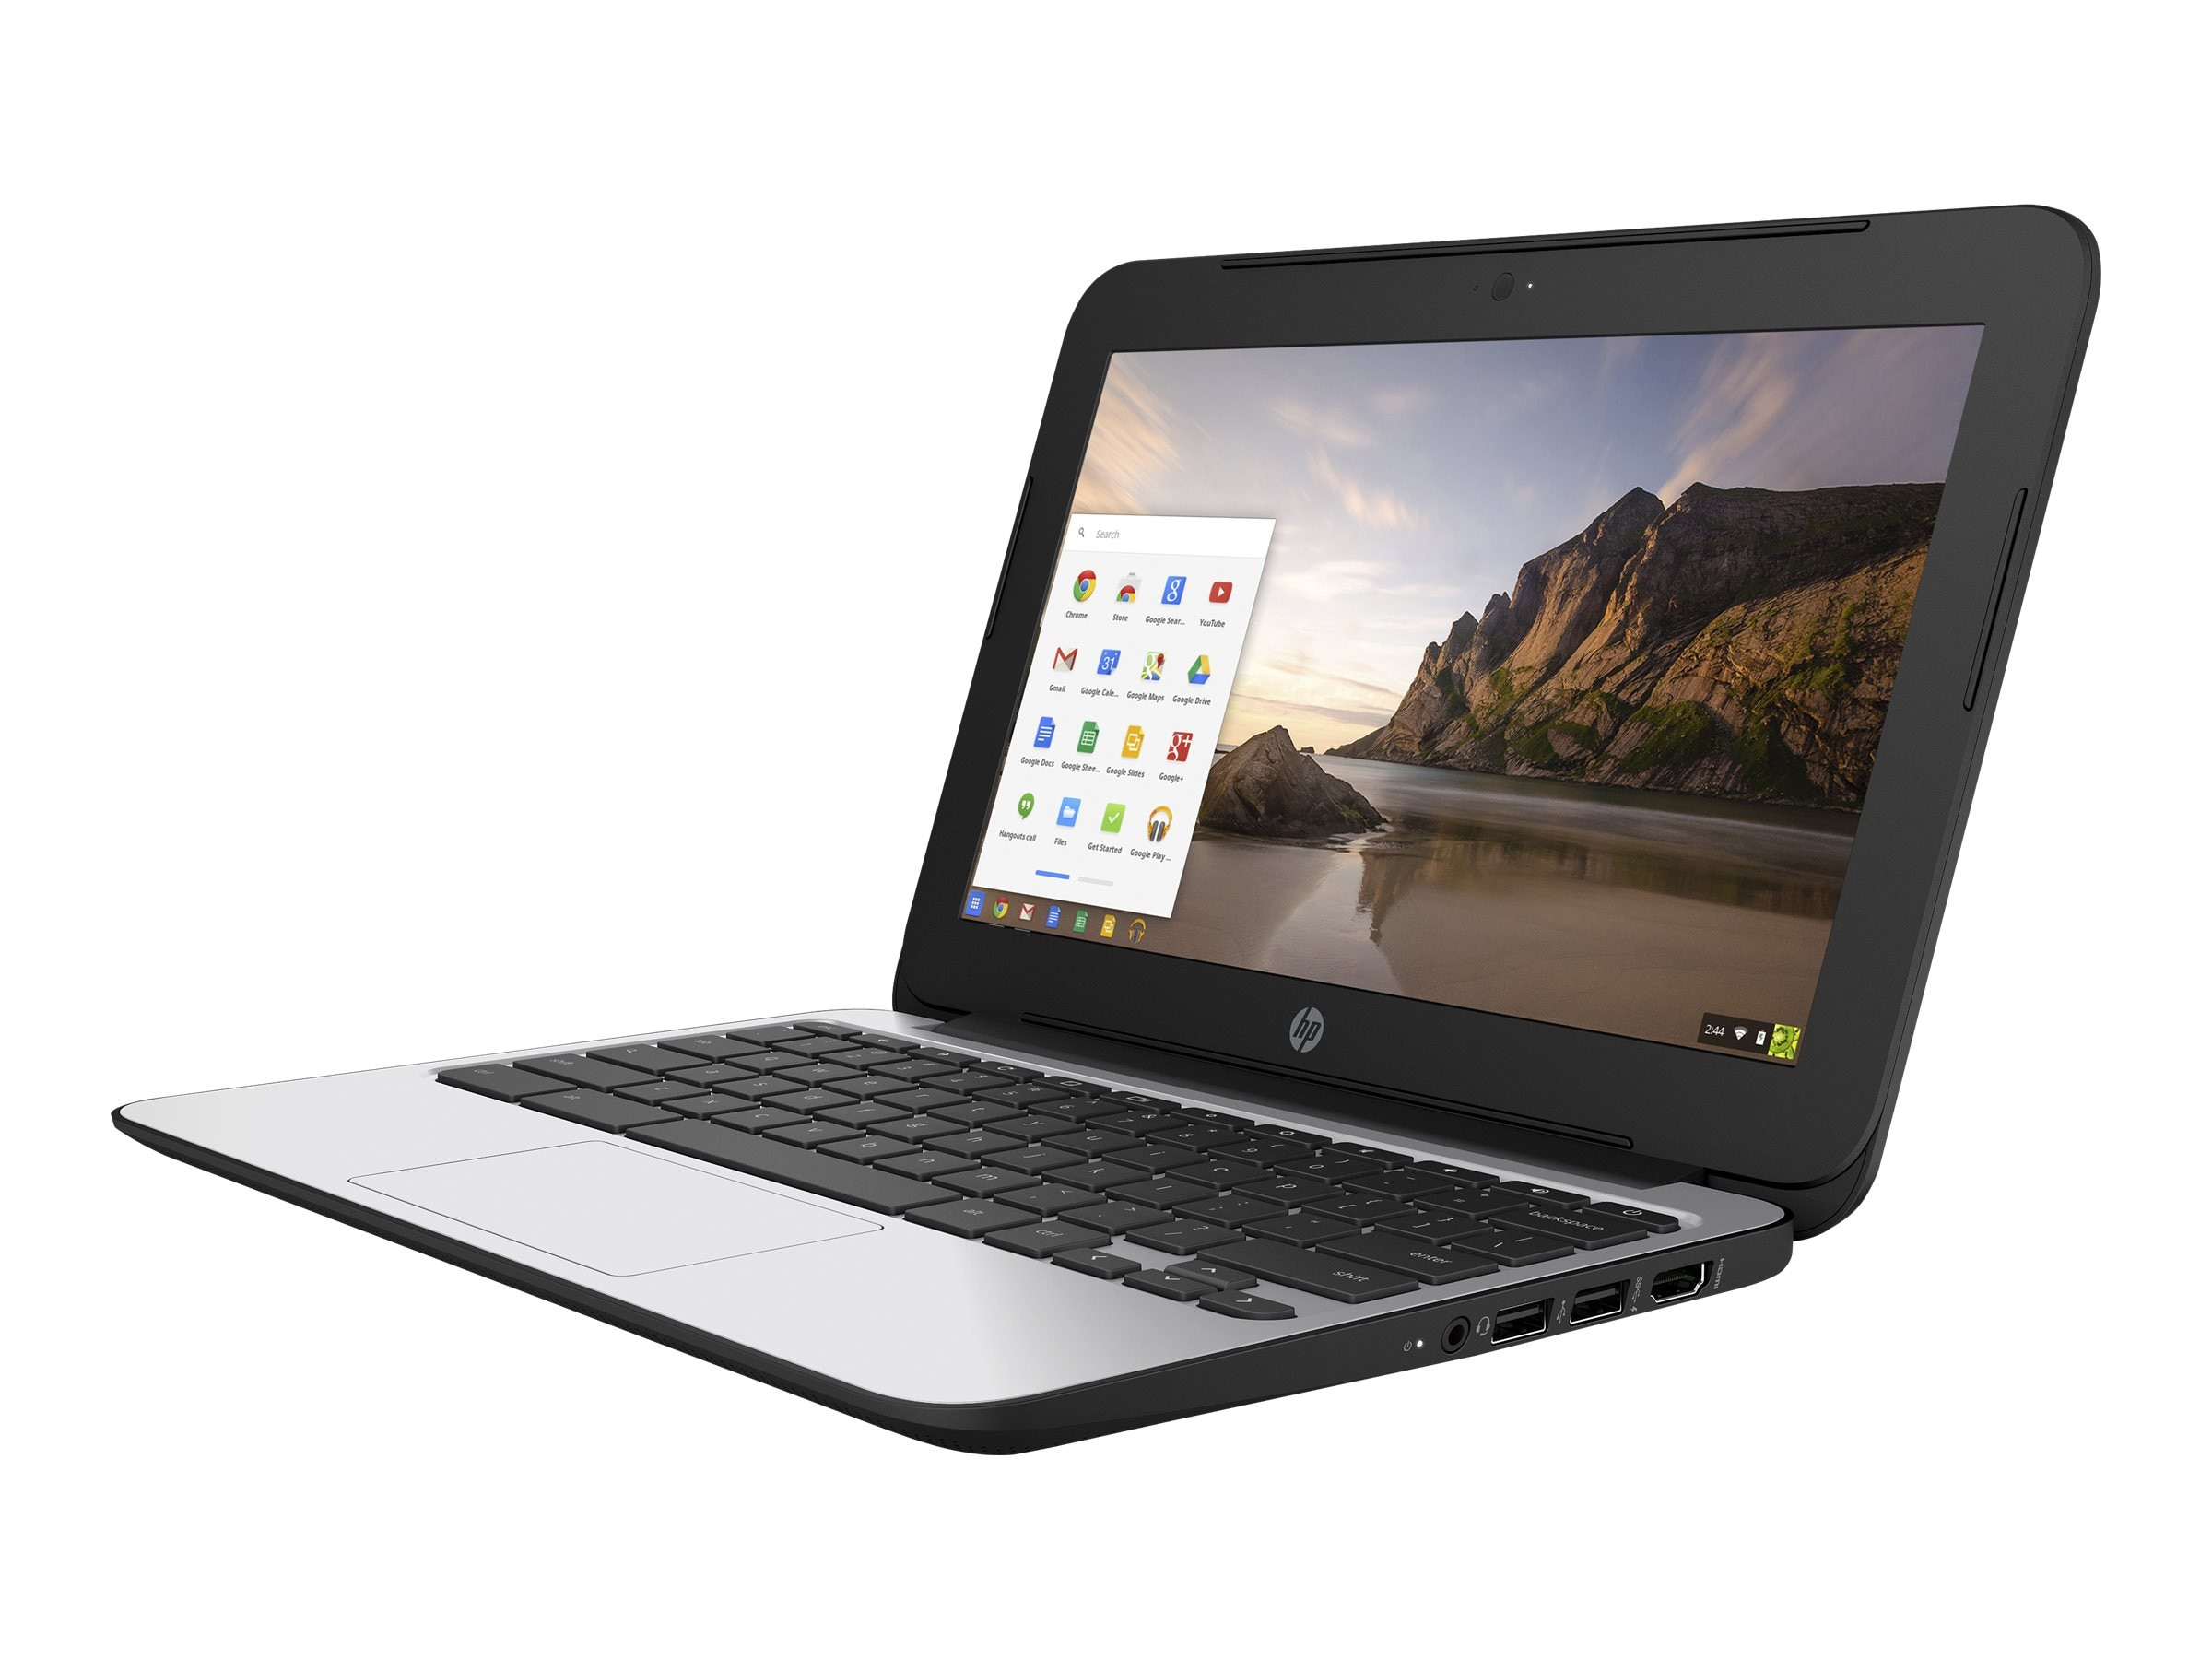 HP Chromebook 11 G4 2.16GHz Celeron 11.6in display, P0B78UT#ABA, 23839925, Notebooks